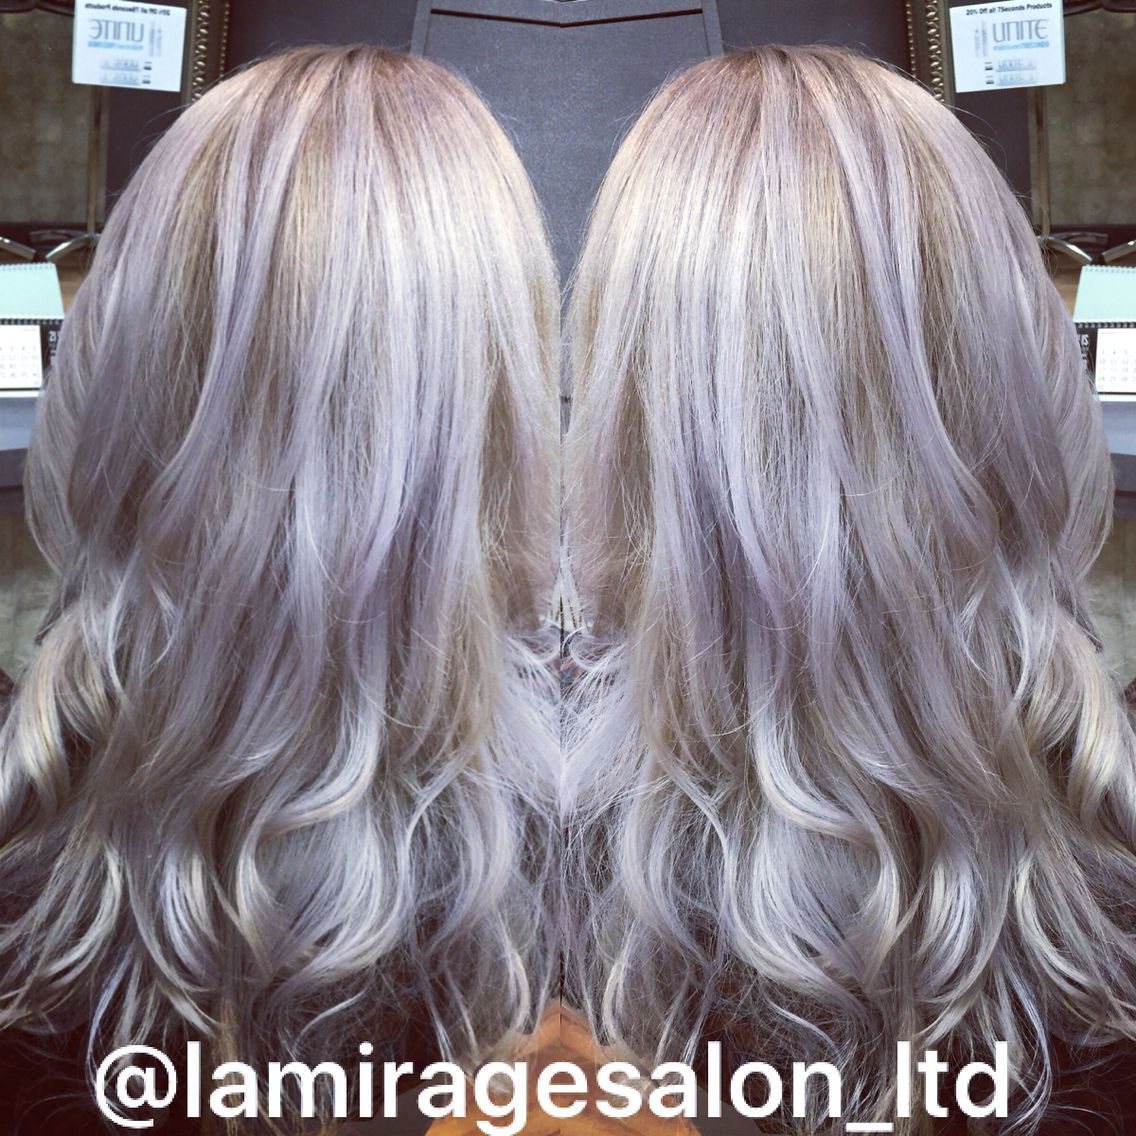 Platinum Blonde Highlights With A Lilac Glaze And A Long Layered Haircut By Bethany Beliz To Sched Platinum Blonde Highlights Hair Styles Platinum Blonde Hair